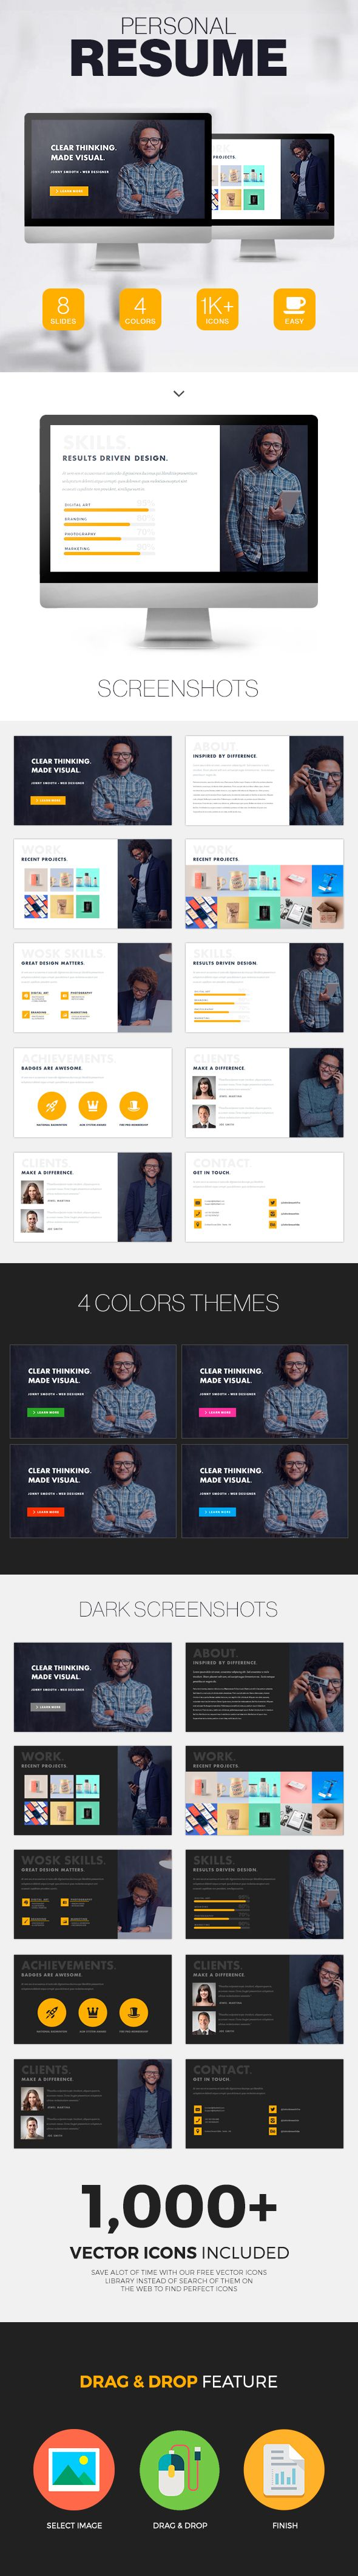 Personal Resume  Powerpoint Presentation  Powerpoint Templates